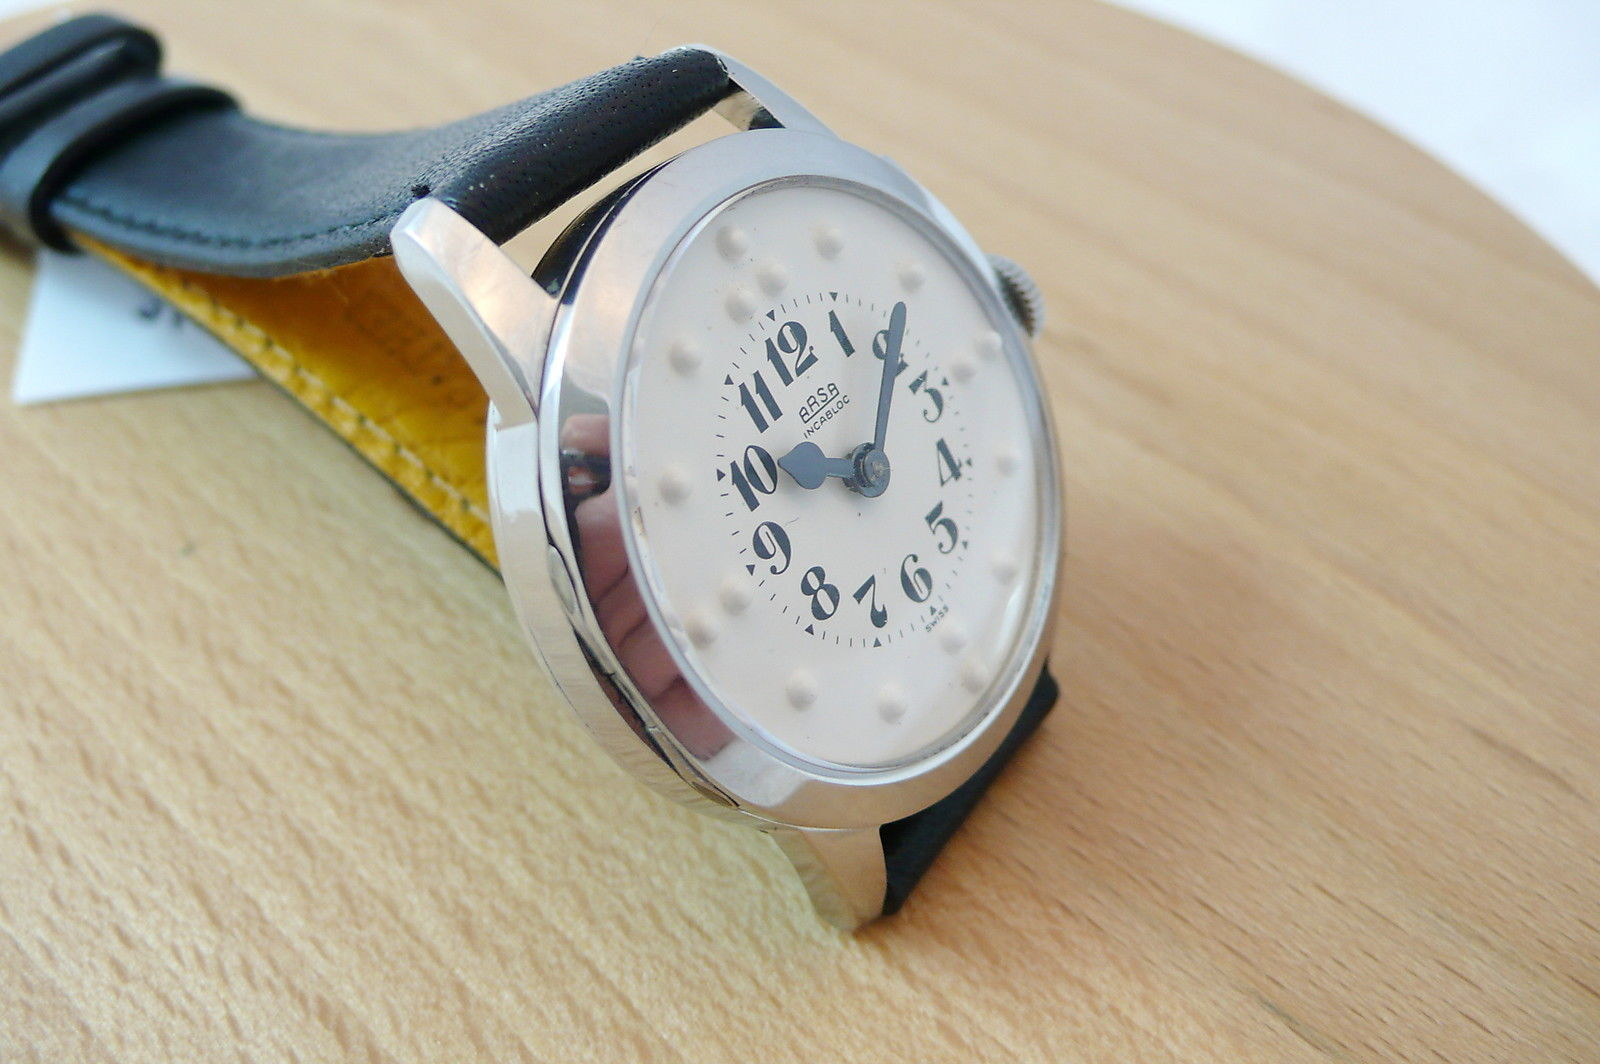 Arsa Braille Watch Movement